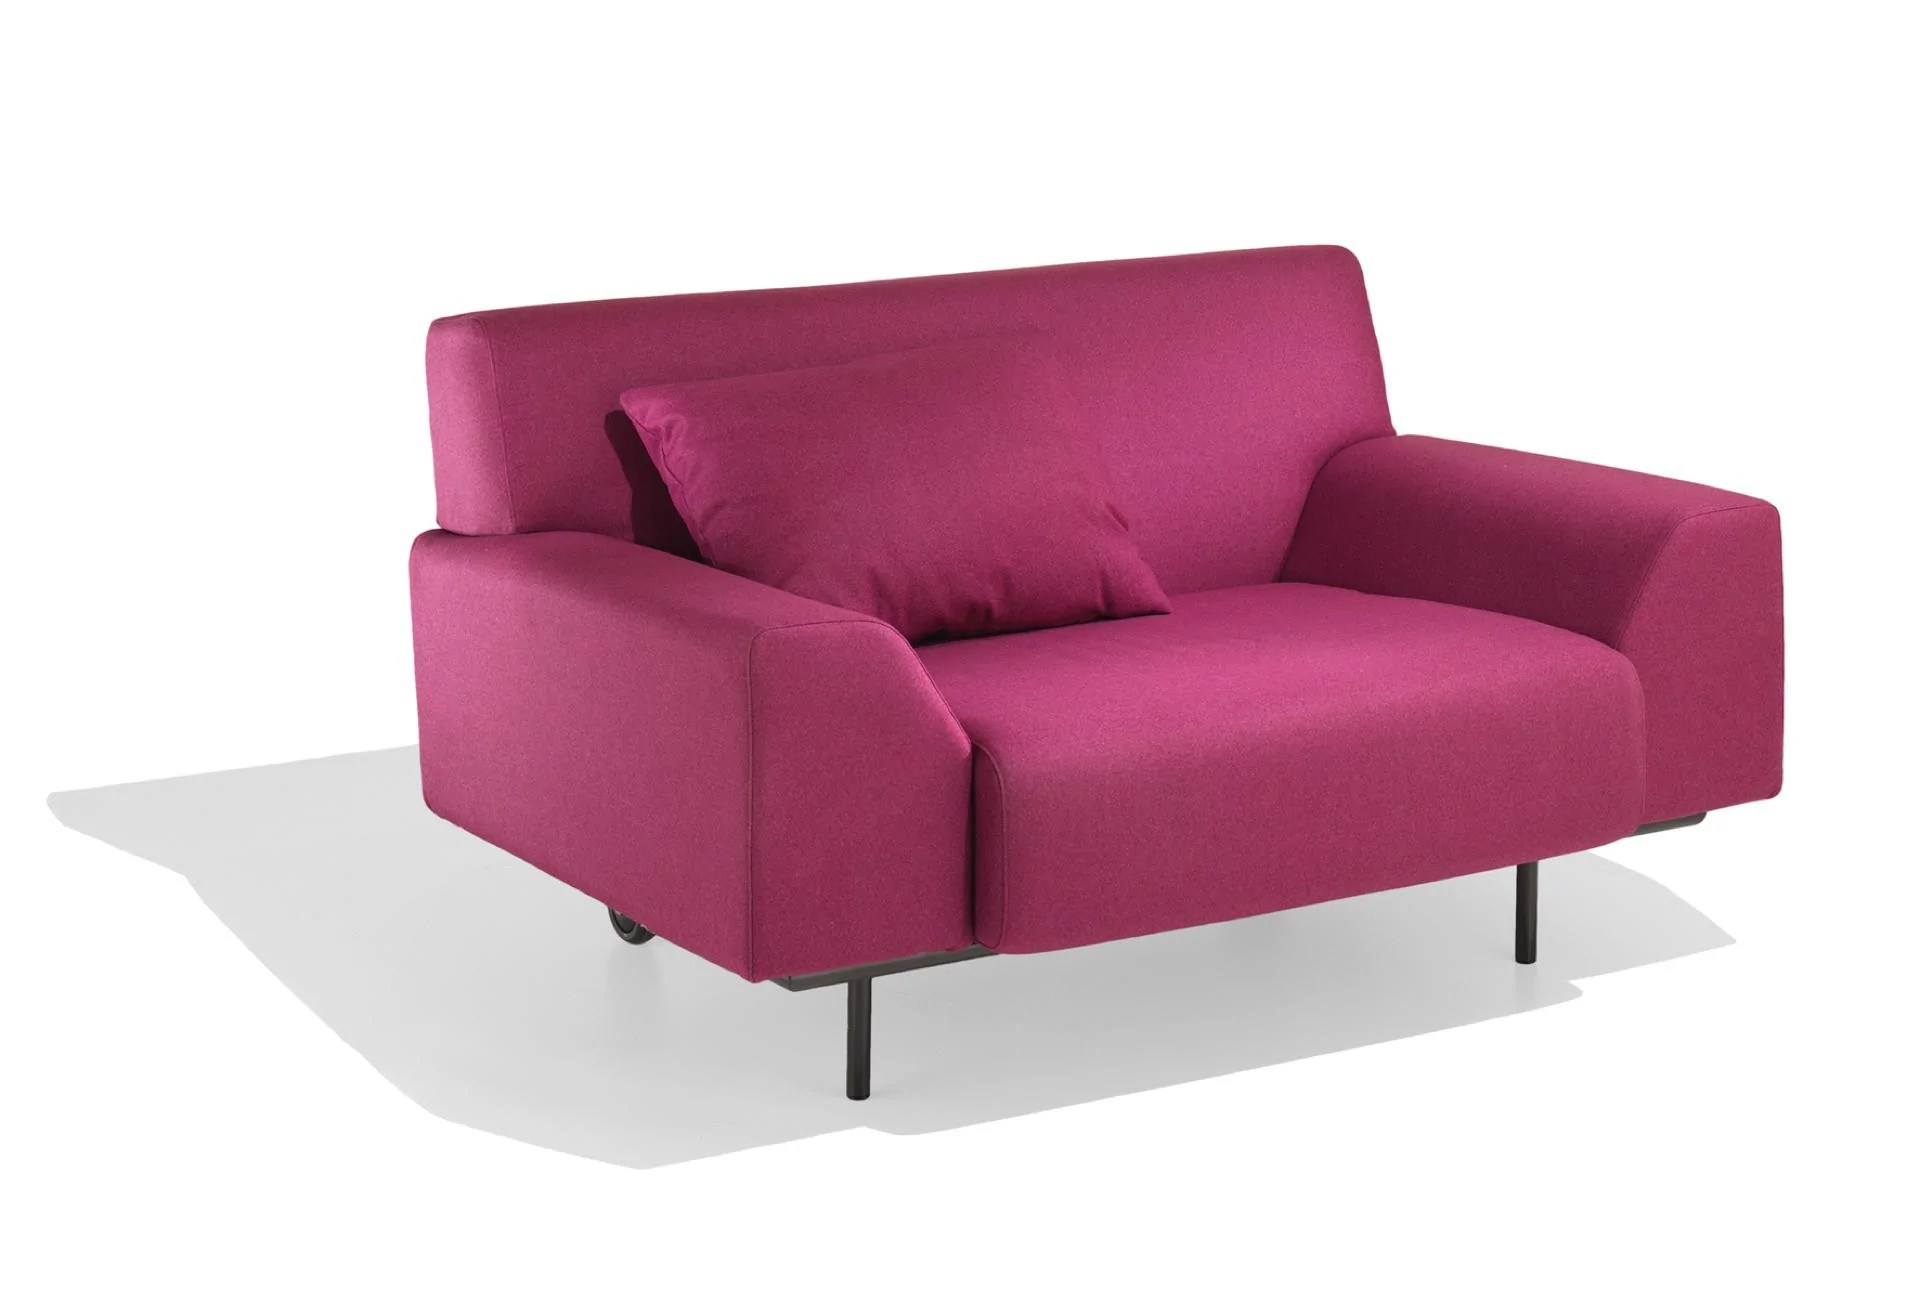 Lounge Couch Company Lounge Chairs Couch Potato Company